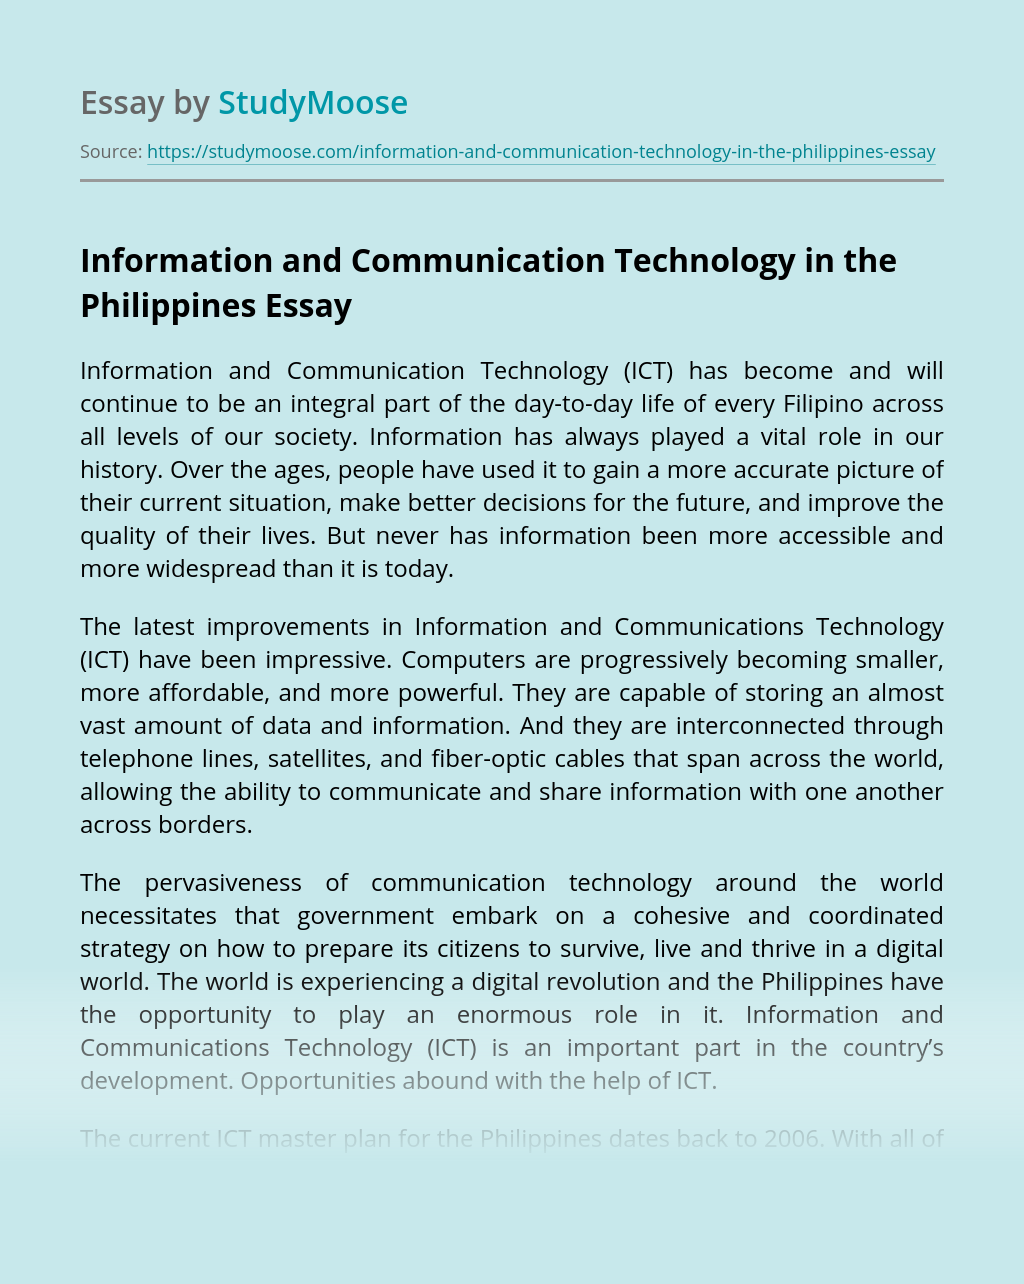 Information and Communication Technology in the Philippines